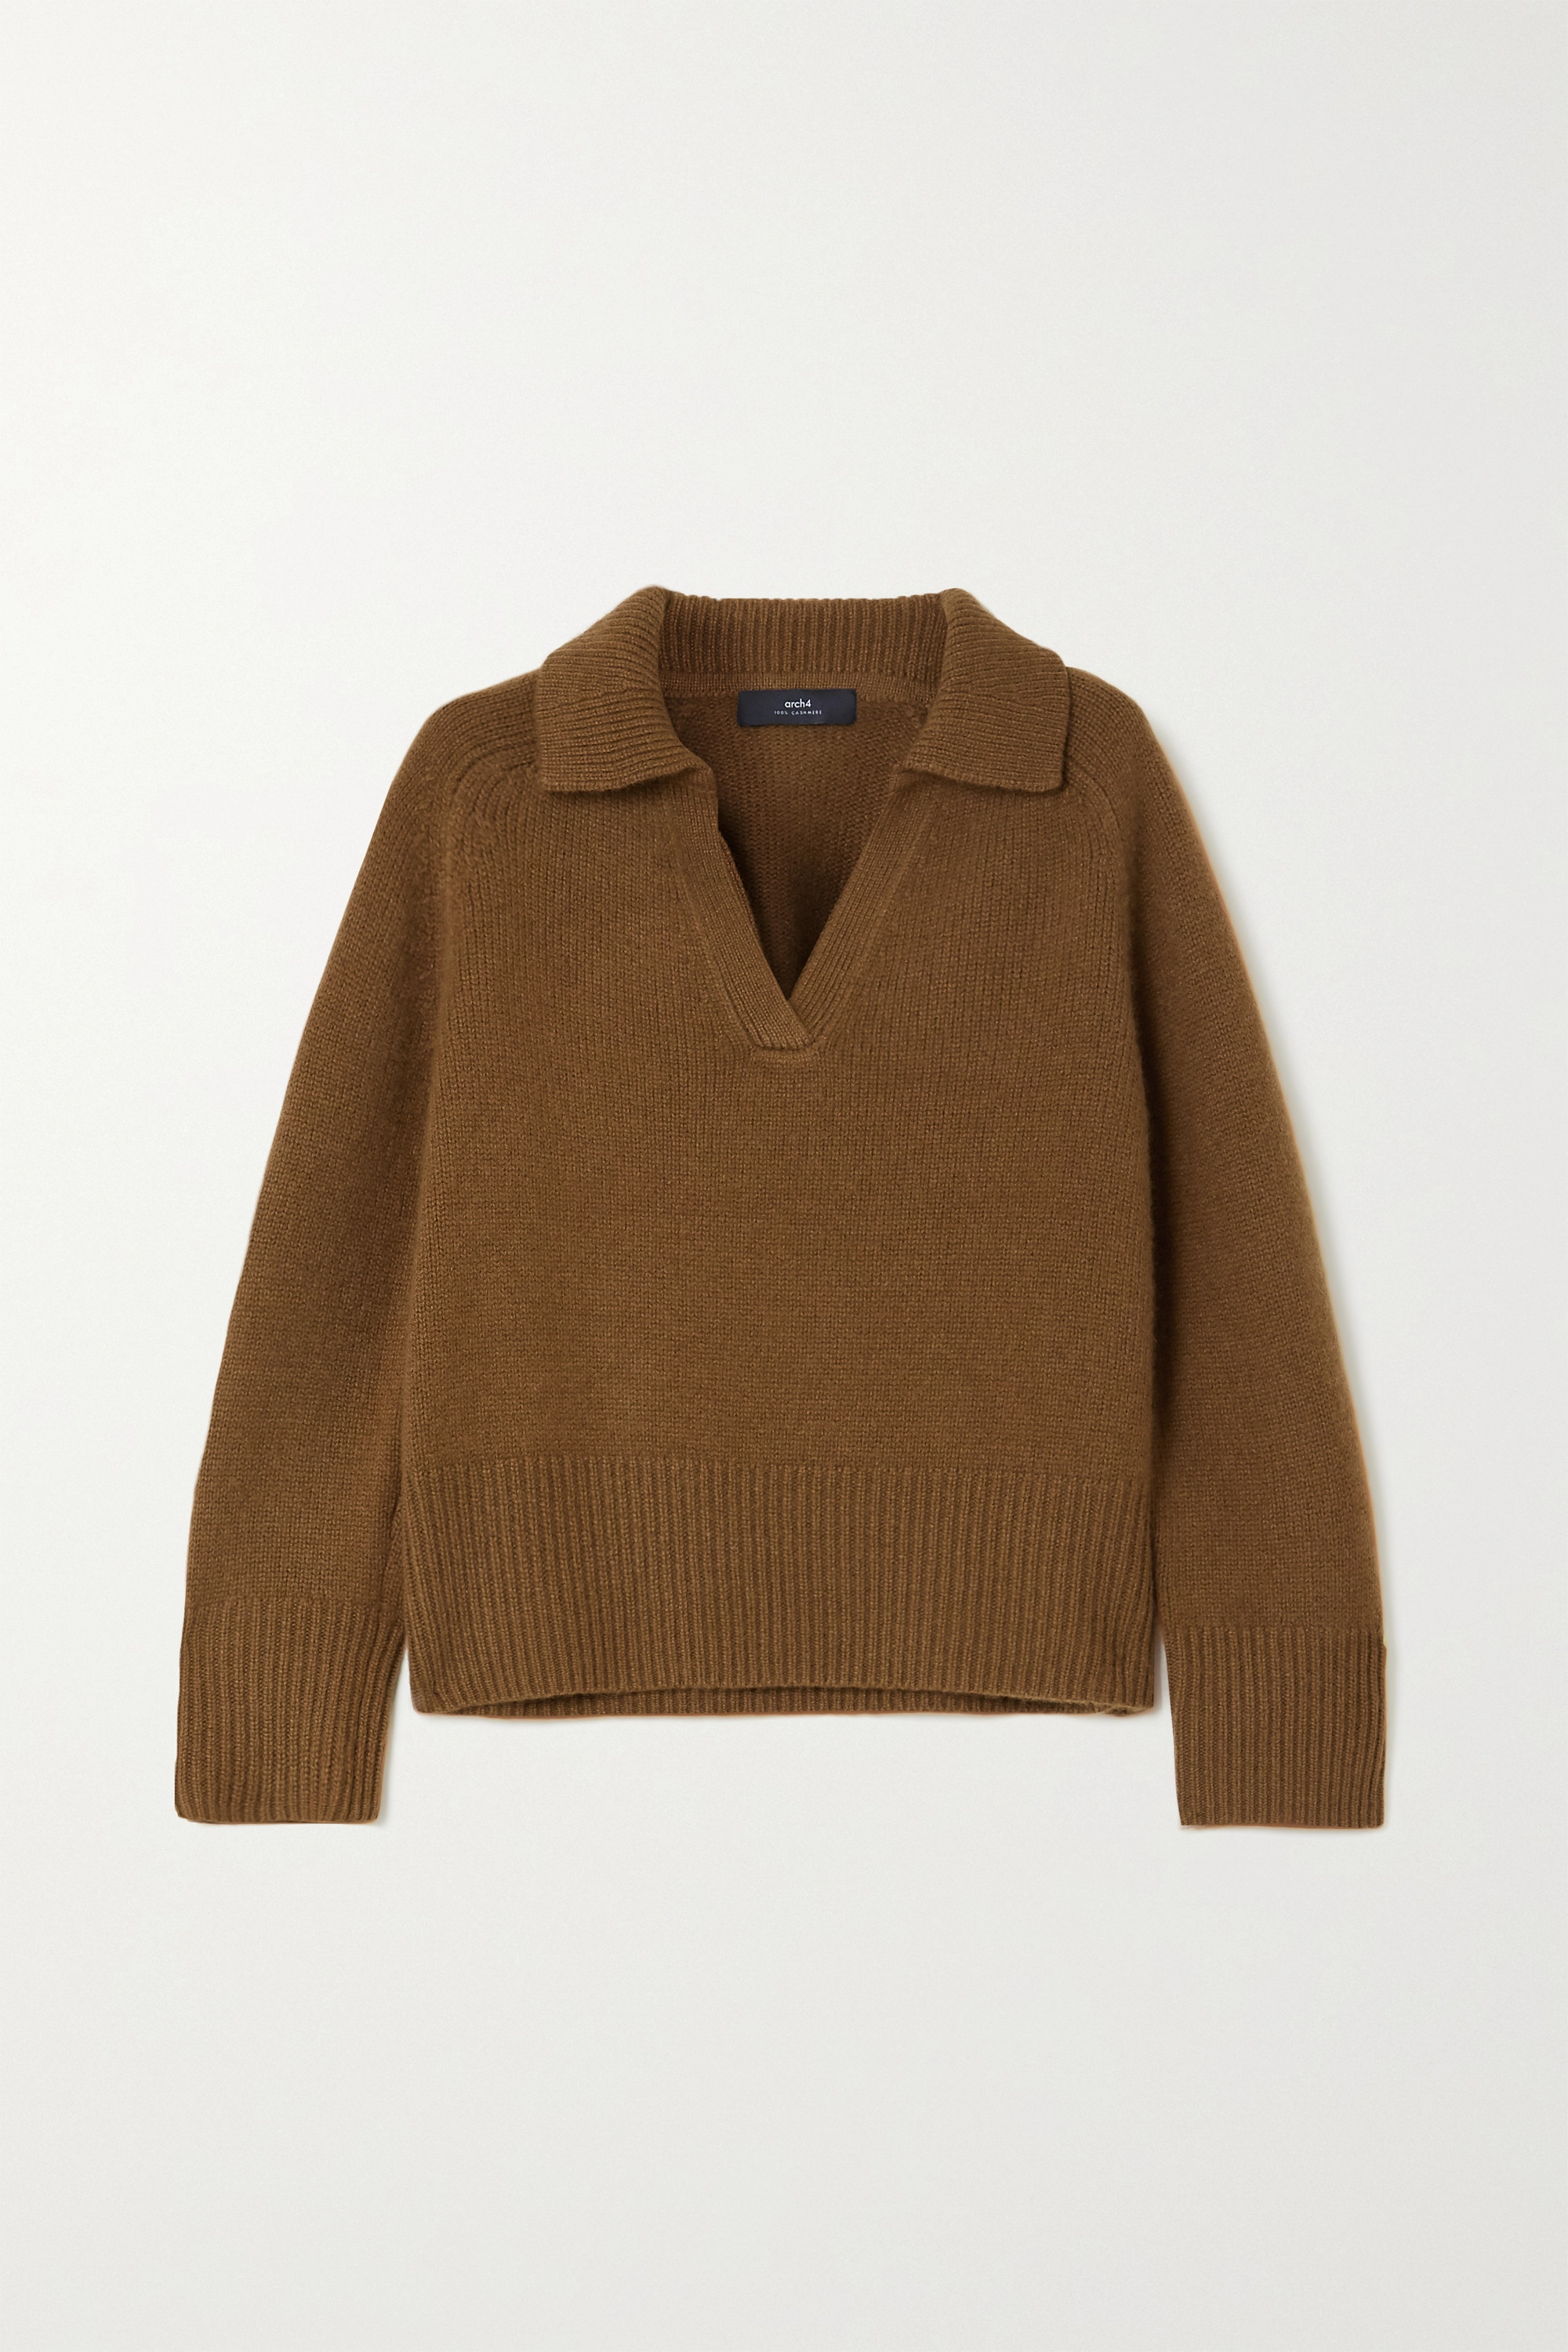 Arch4 Clifton cashmere sweater